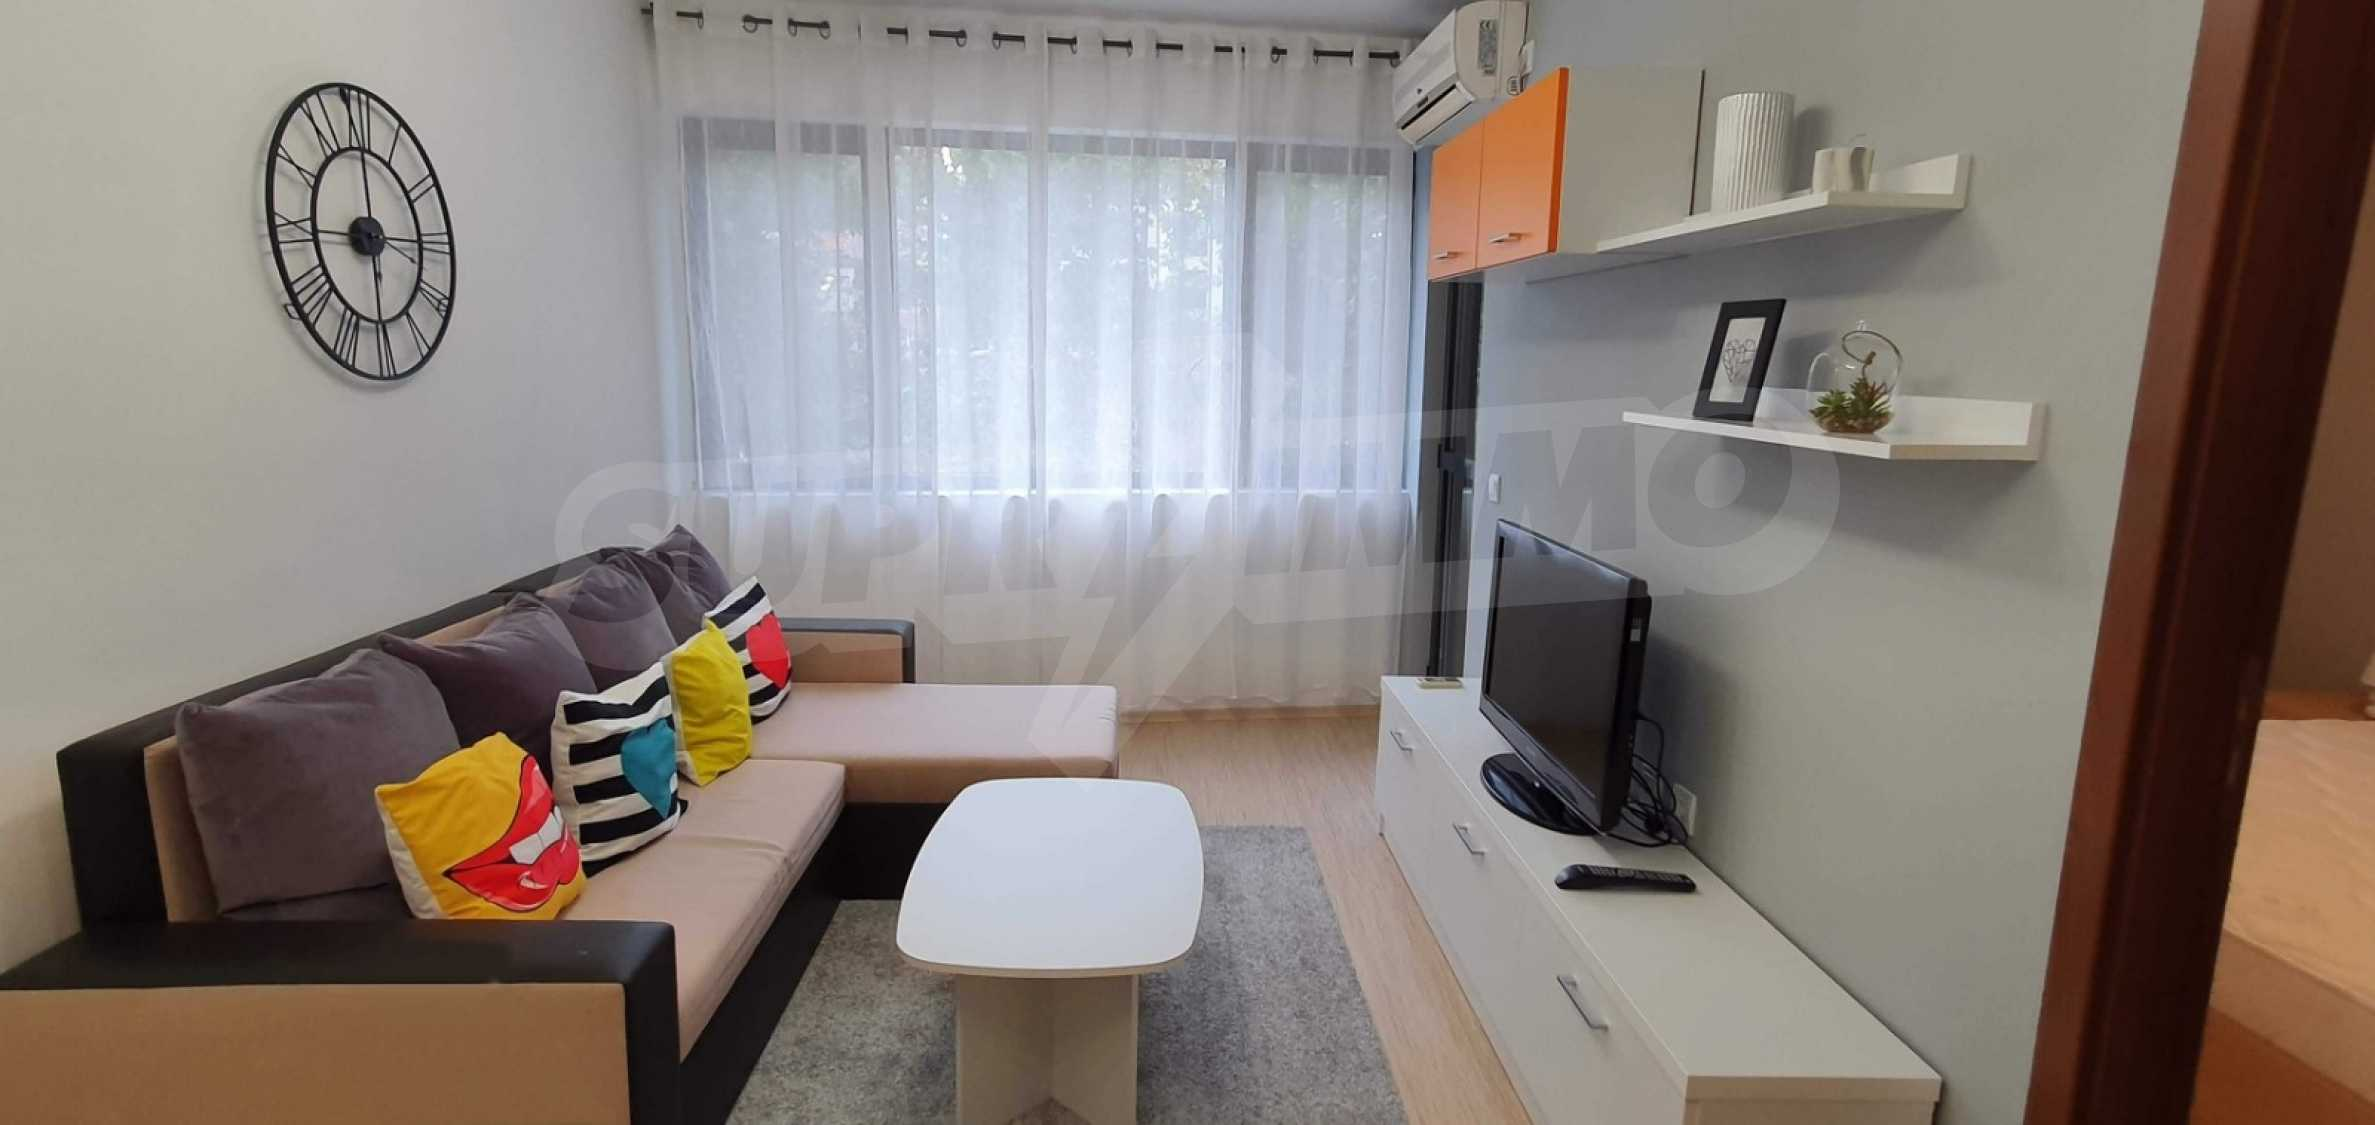 One bedroom apartment in a new residential building near the HMI, in Plovdiv